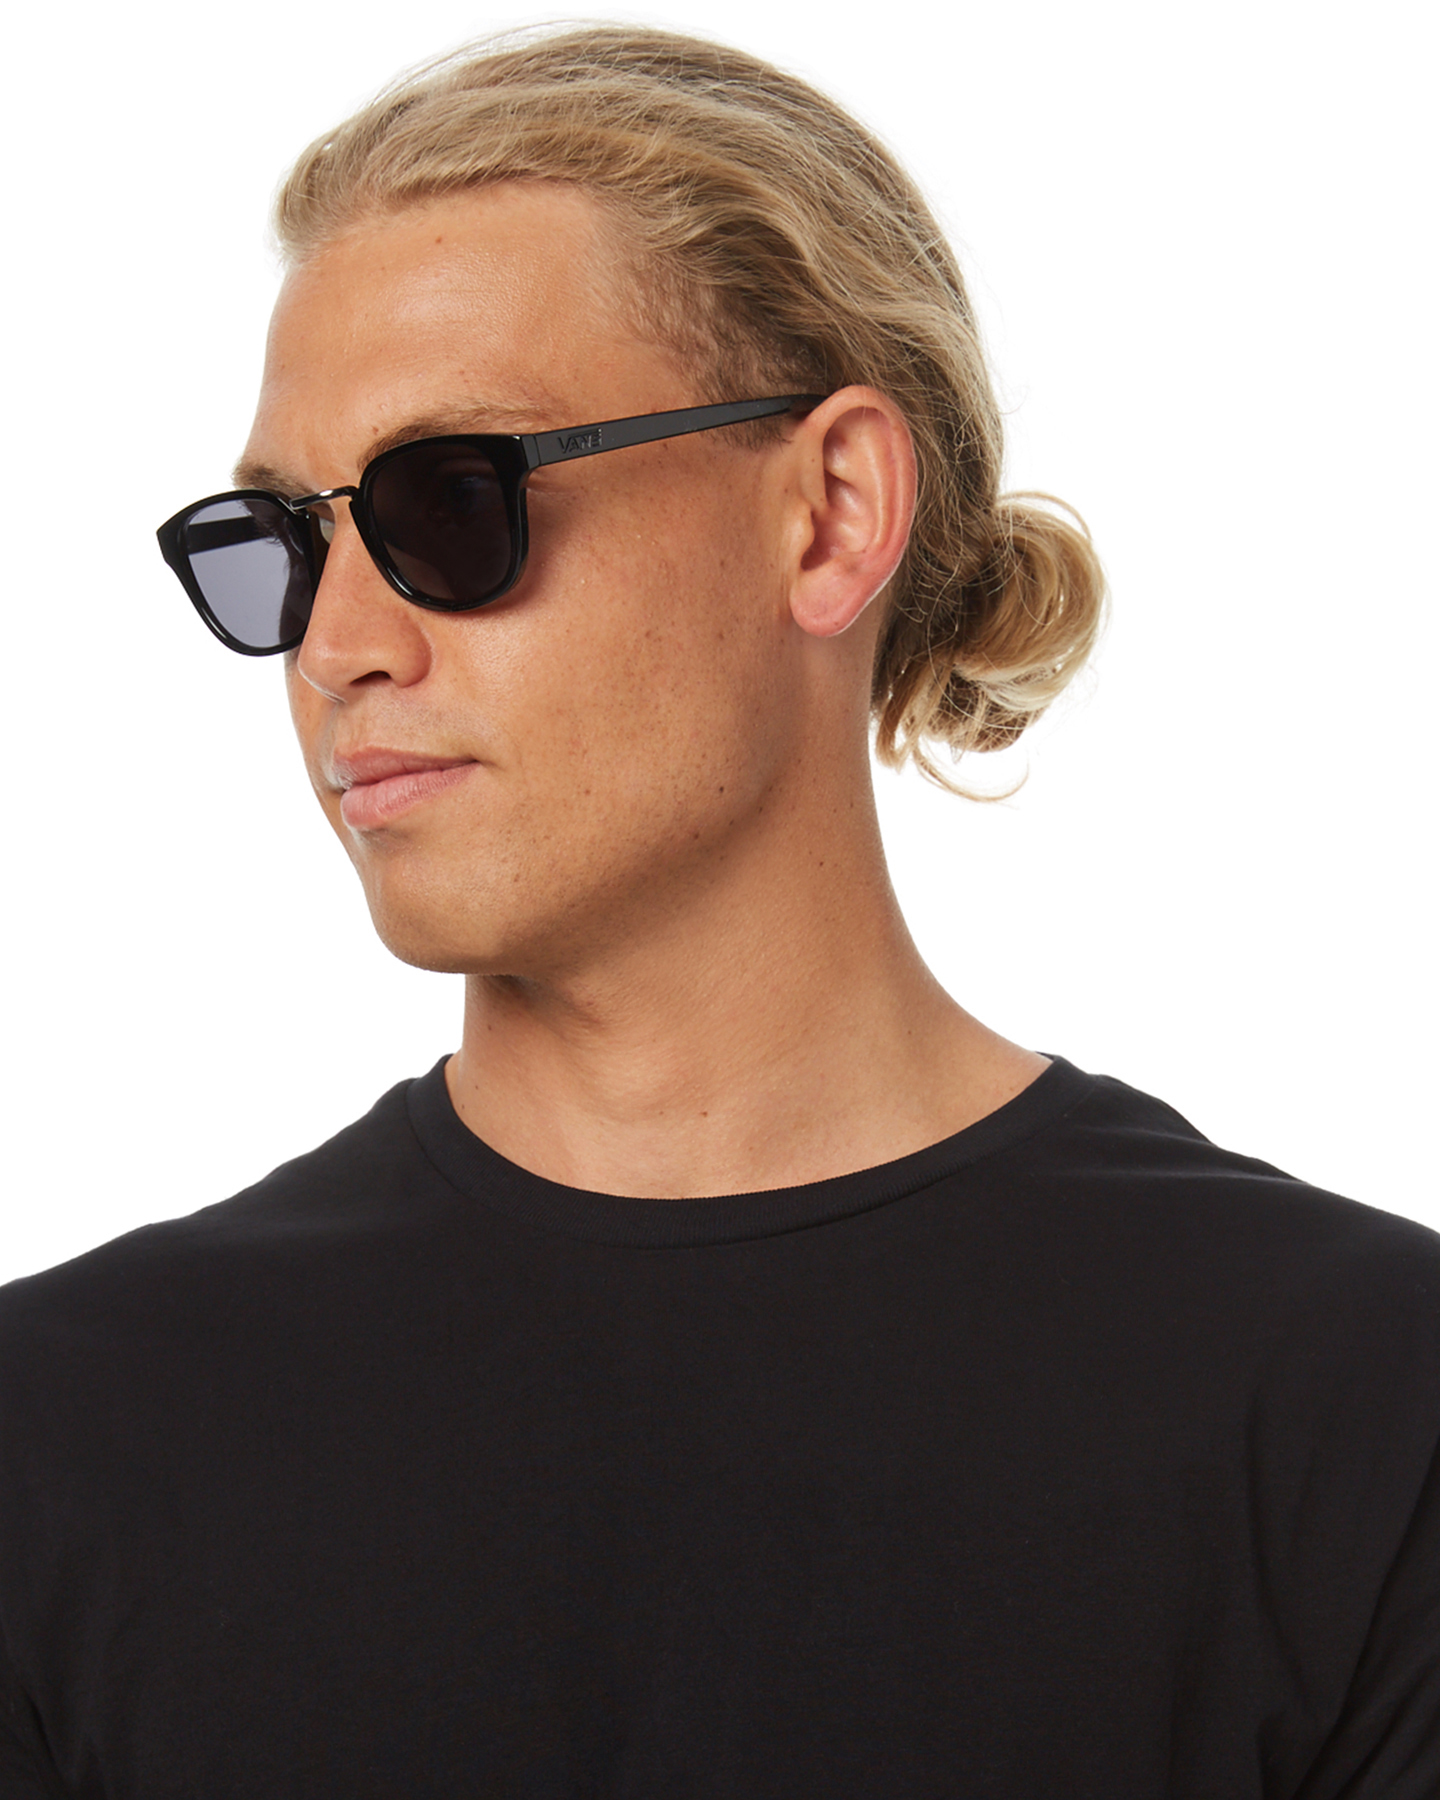 vans sunglasses men black